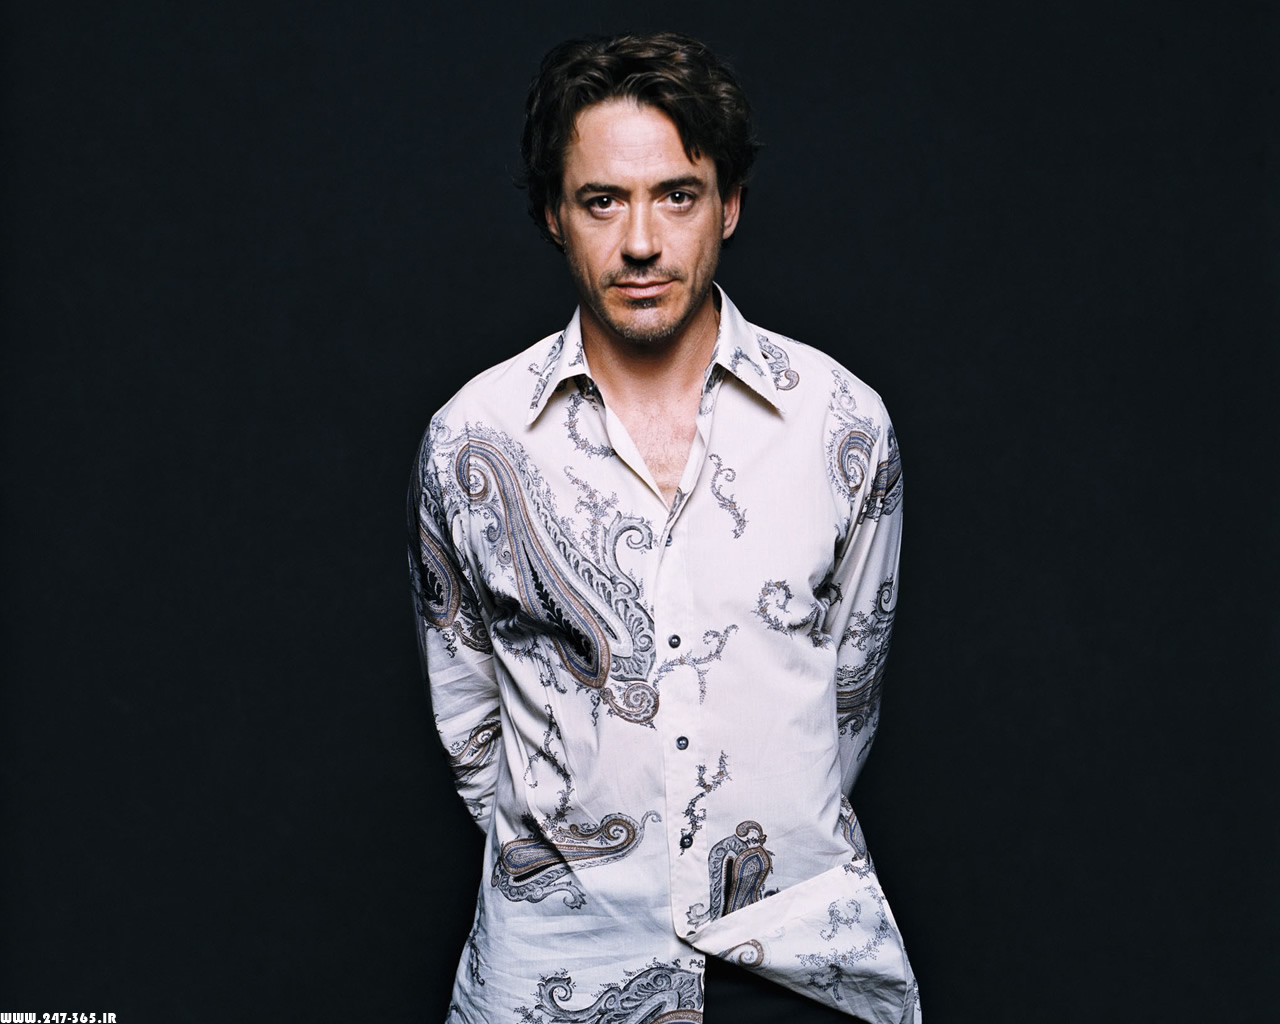 http://dl.247-365.ir/pic/celebrity/robert_downey_jr_2/Robert_Downey_Jr_2_11.jpg